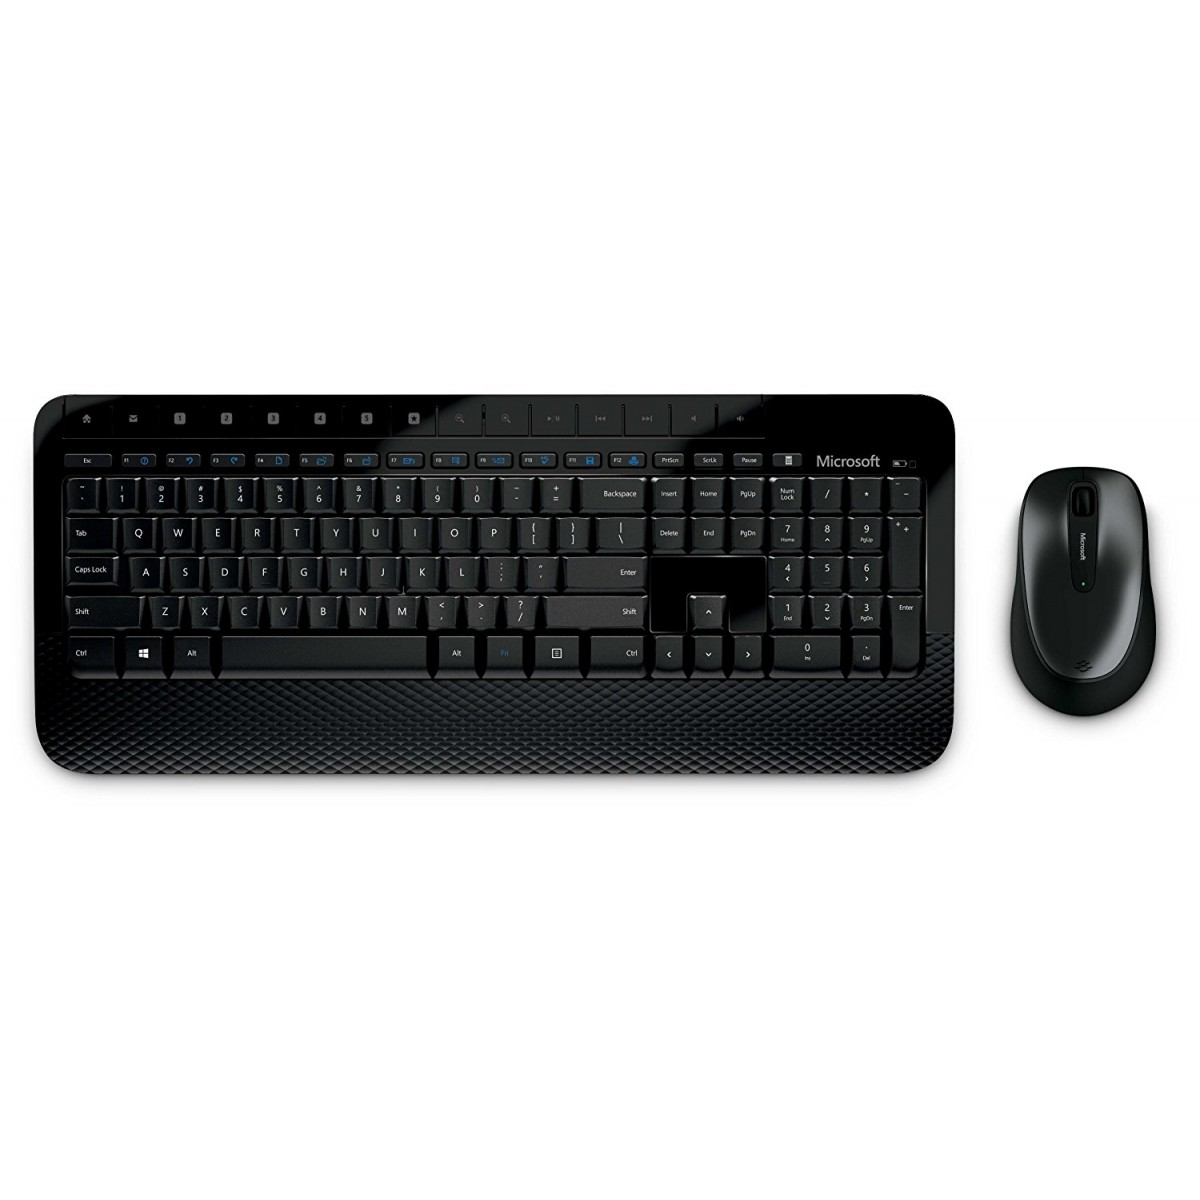 Microsoft 2000 Wireless Keyboard & Mouse Combo